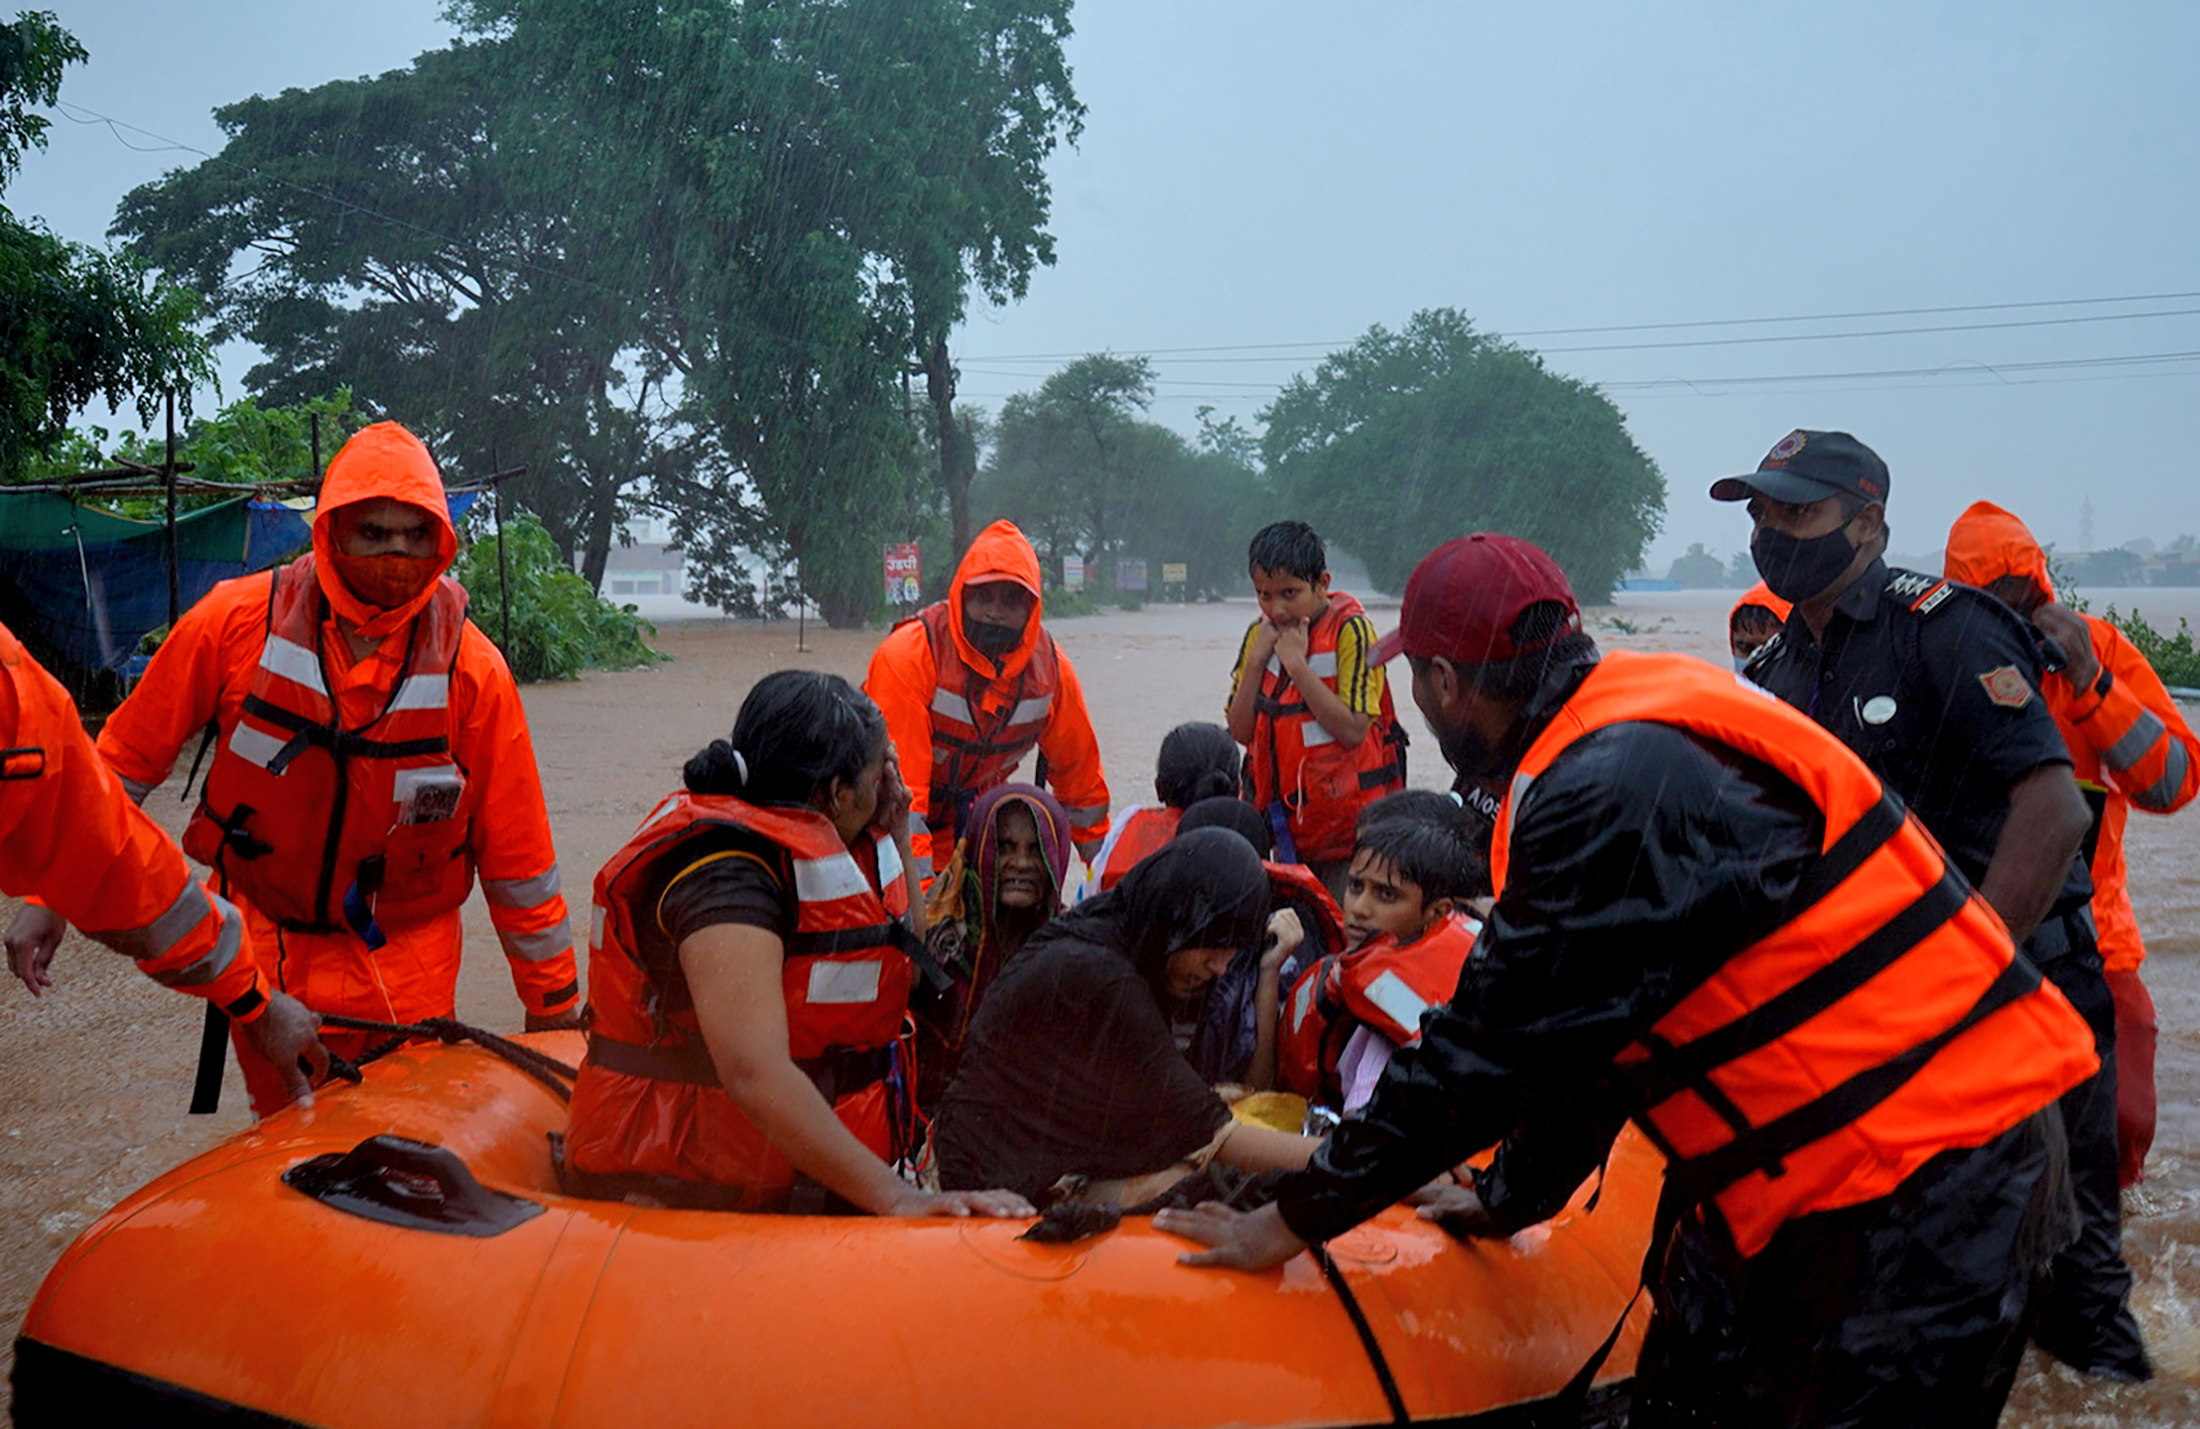 Rescue workers evacuate people from a flooded area to safer places after heavy rains in Kolhapur in the western state of Maharashtra, India, July 23, 2021. REUTERS/Abhijeet Gurjar